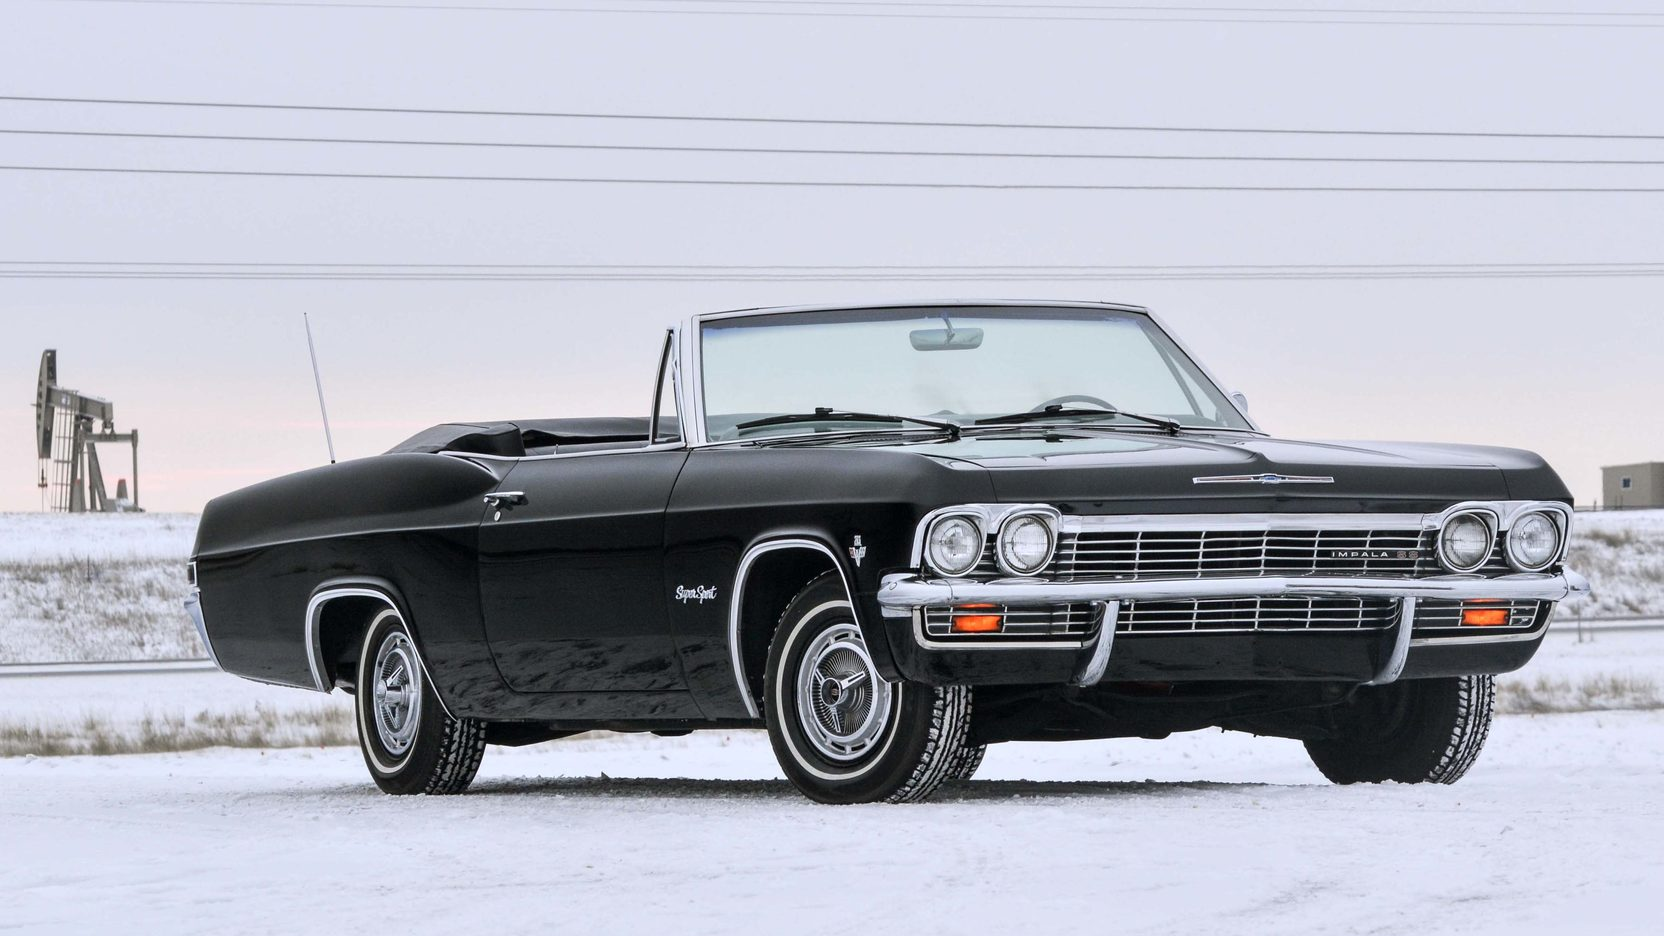 1965 Chevrolet Impala SS black snow hill front 3/4